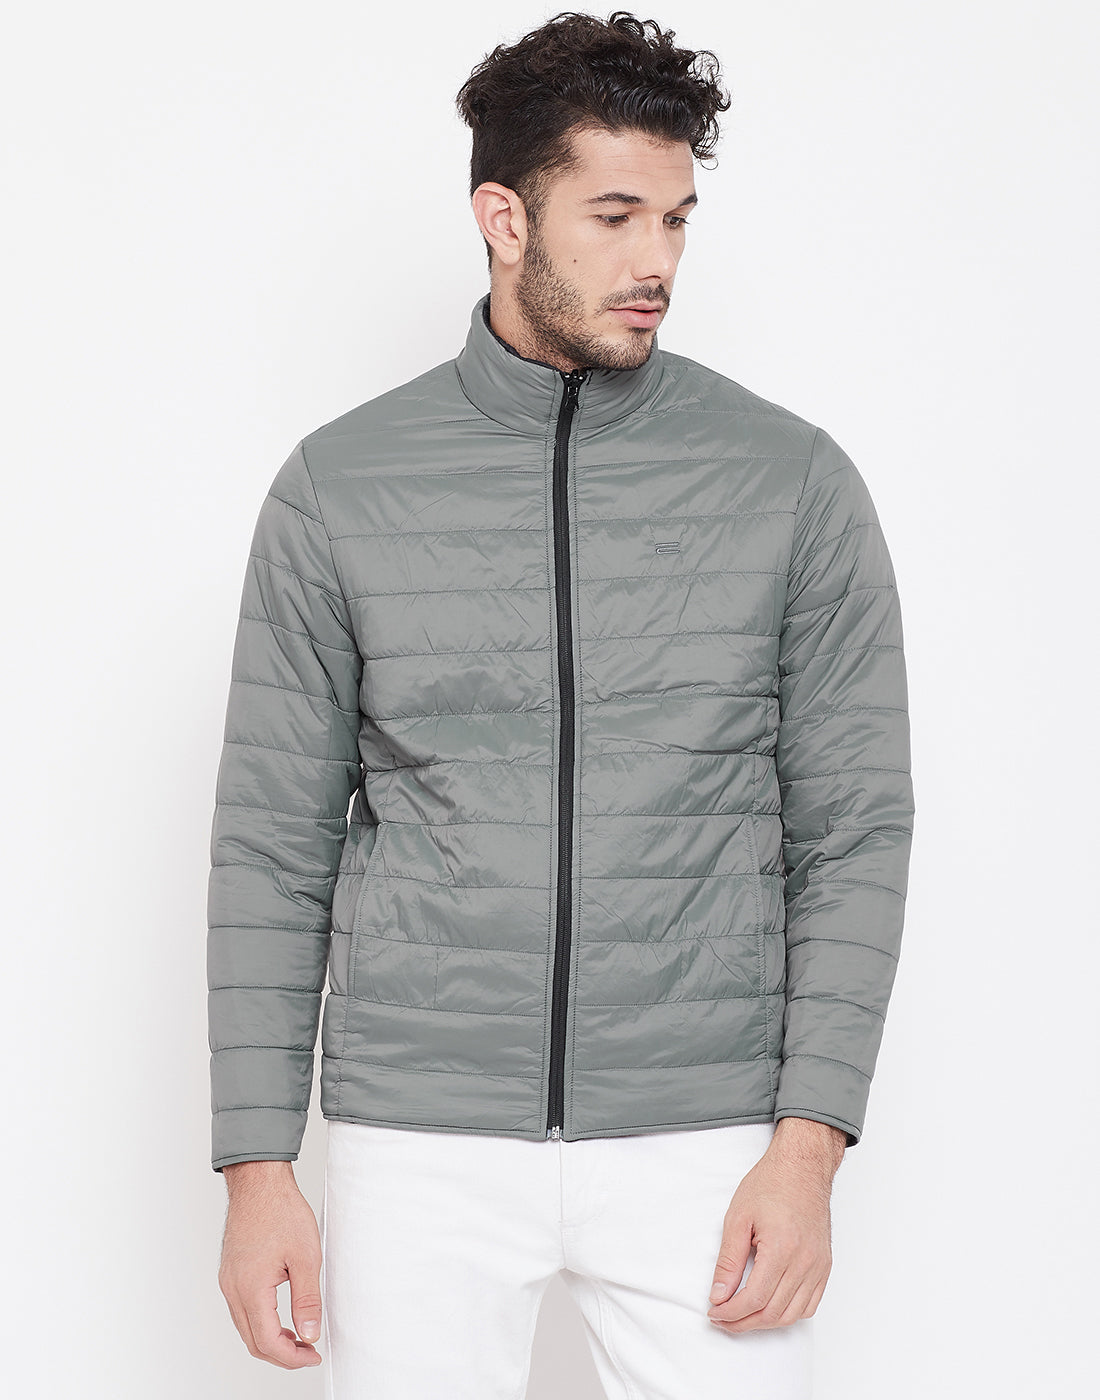 Mettle Black and Grey Reversible Jacket for Men